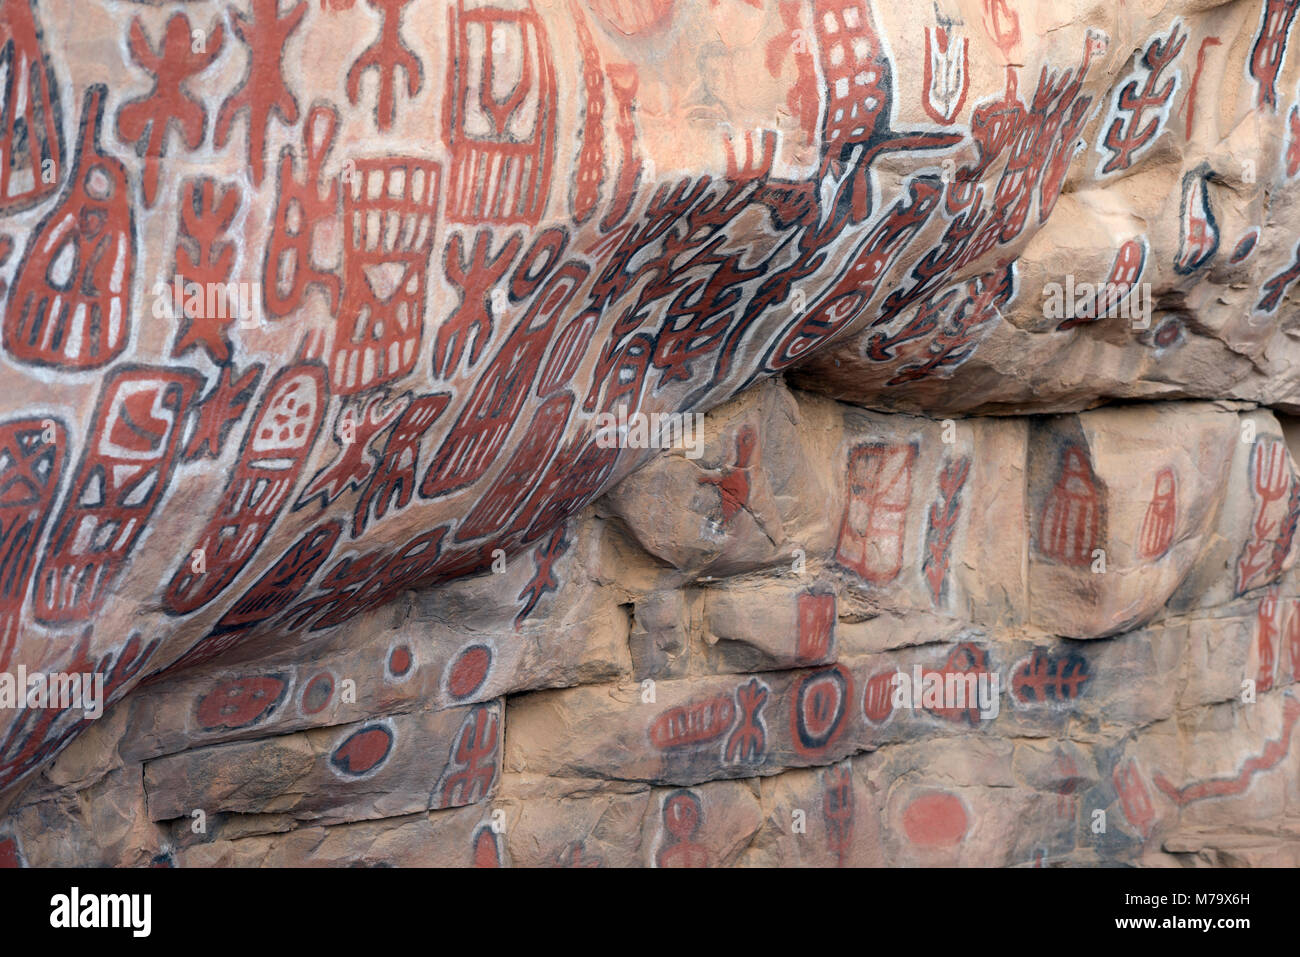 Tribal art in the form of cave painting at a traditional circumcision site. Dogon country, Mali, West Africa. - Stock Image